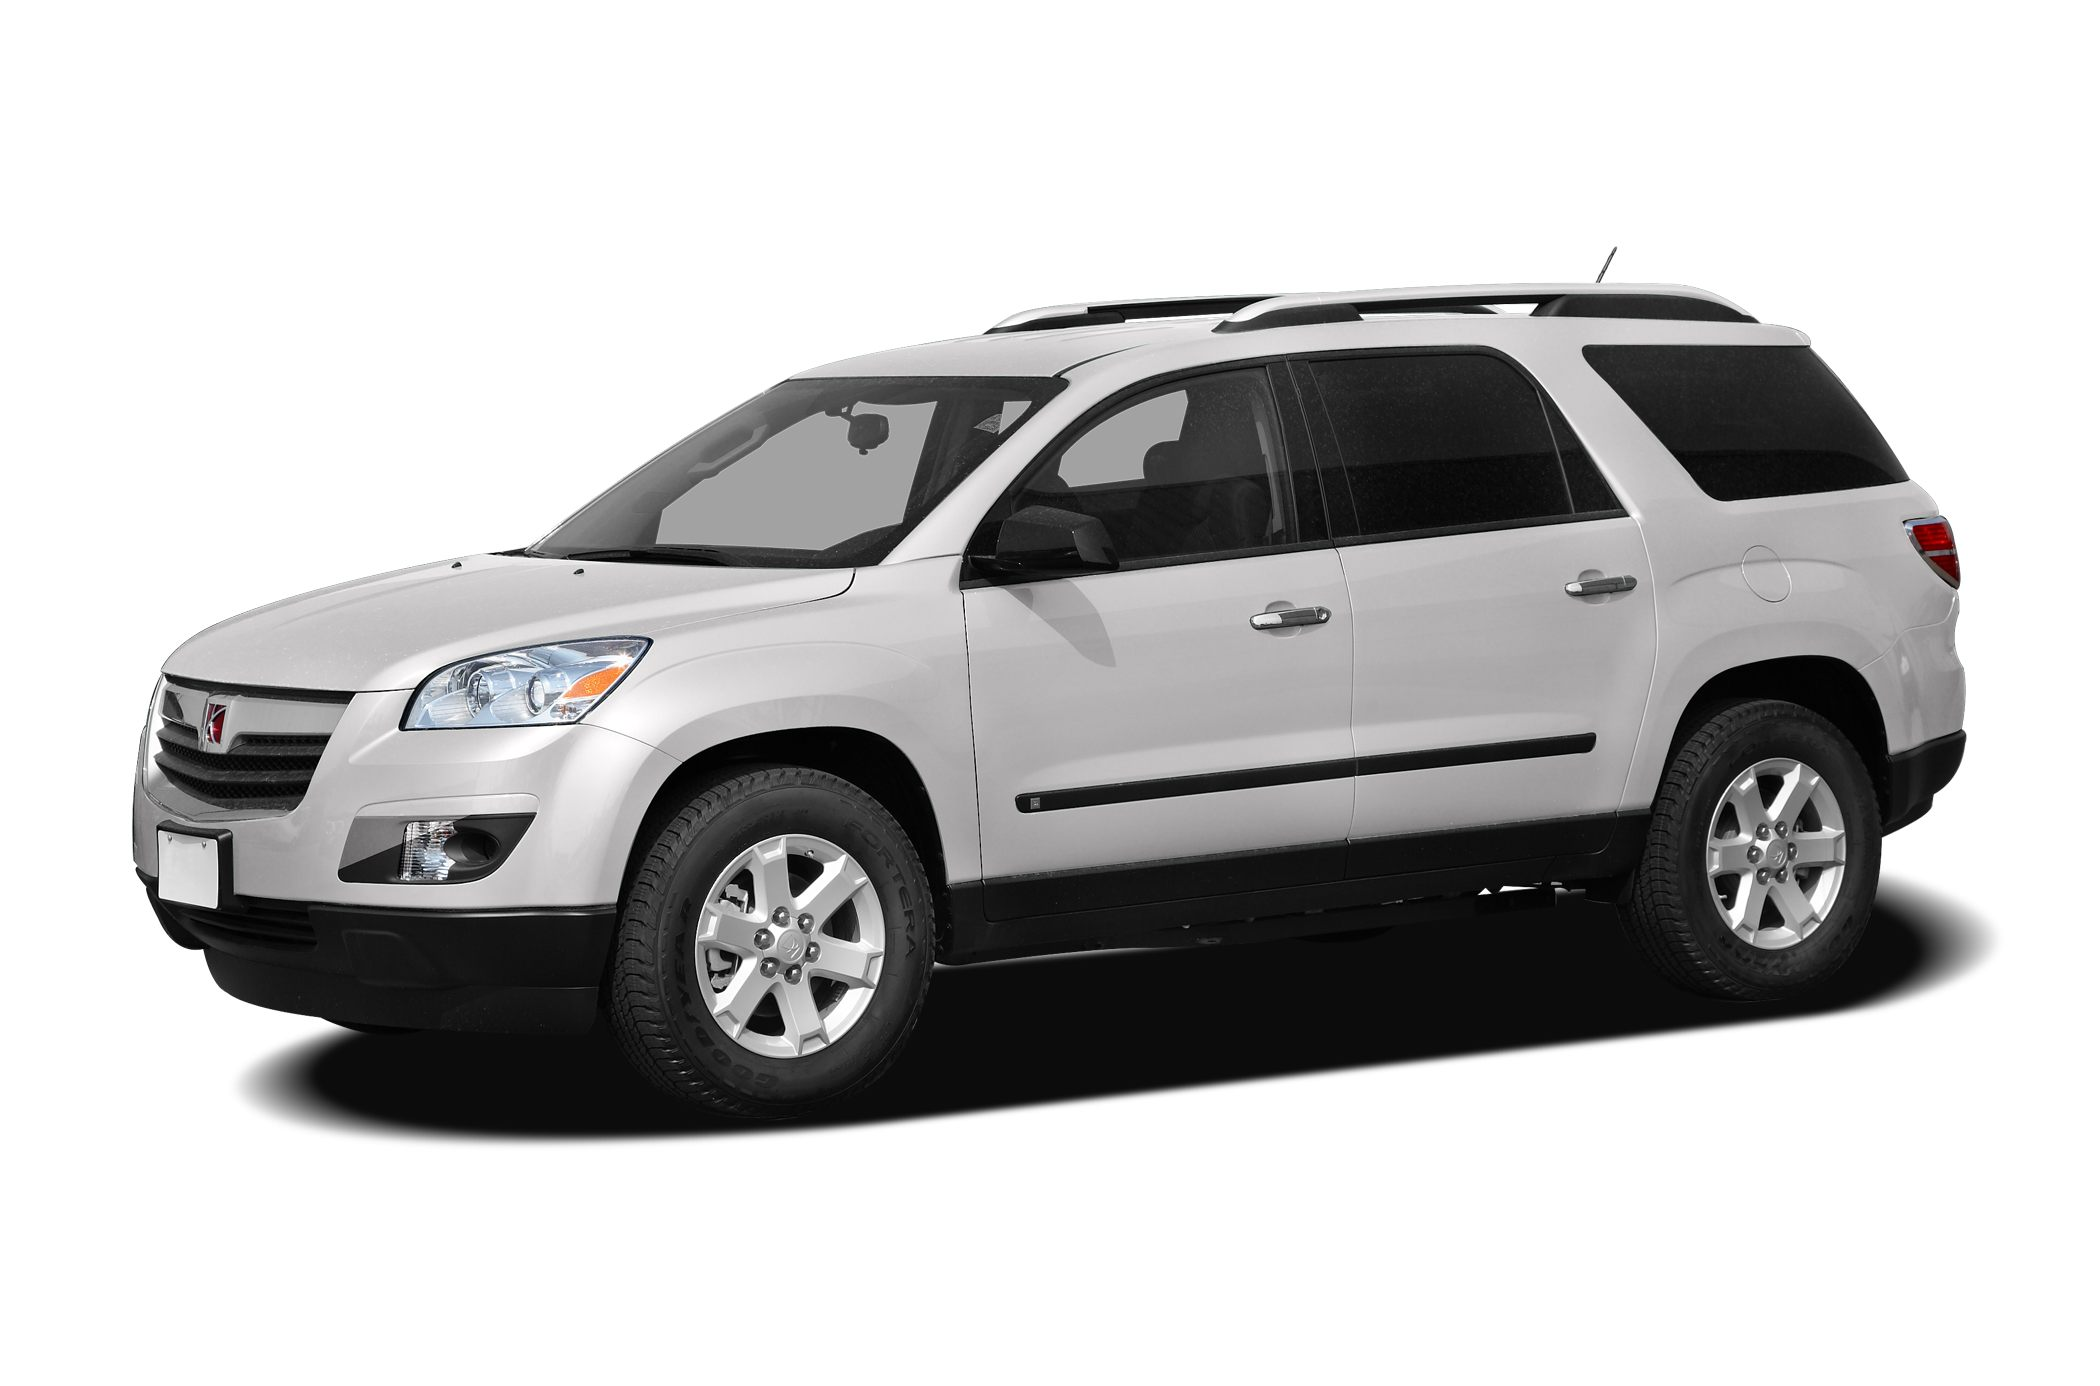 2008 Saturn Outlook XR SUV for sale in Pulaski for $11,888 with 130,130 miles.